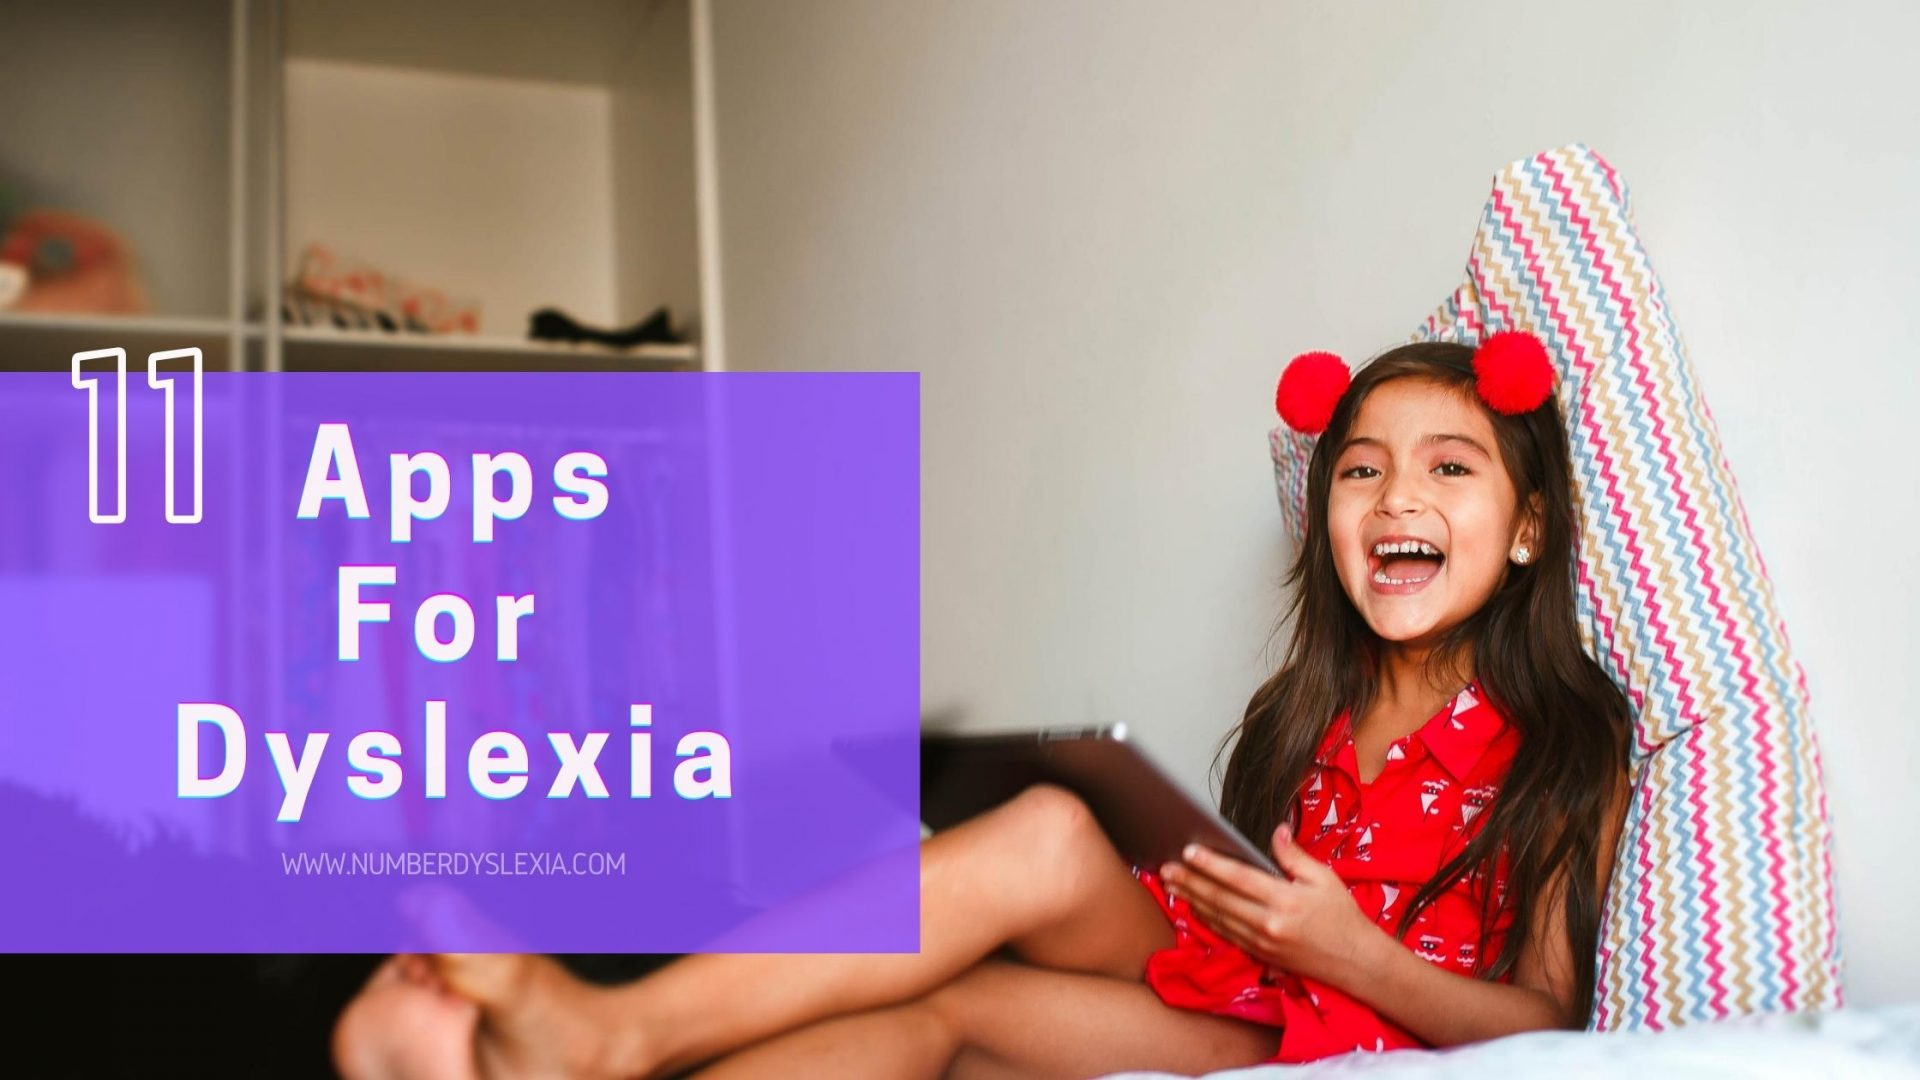 List of top 11 free and paid apps for students with dyslexia